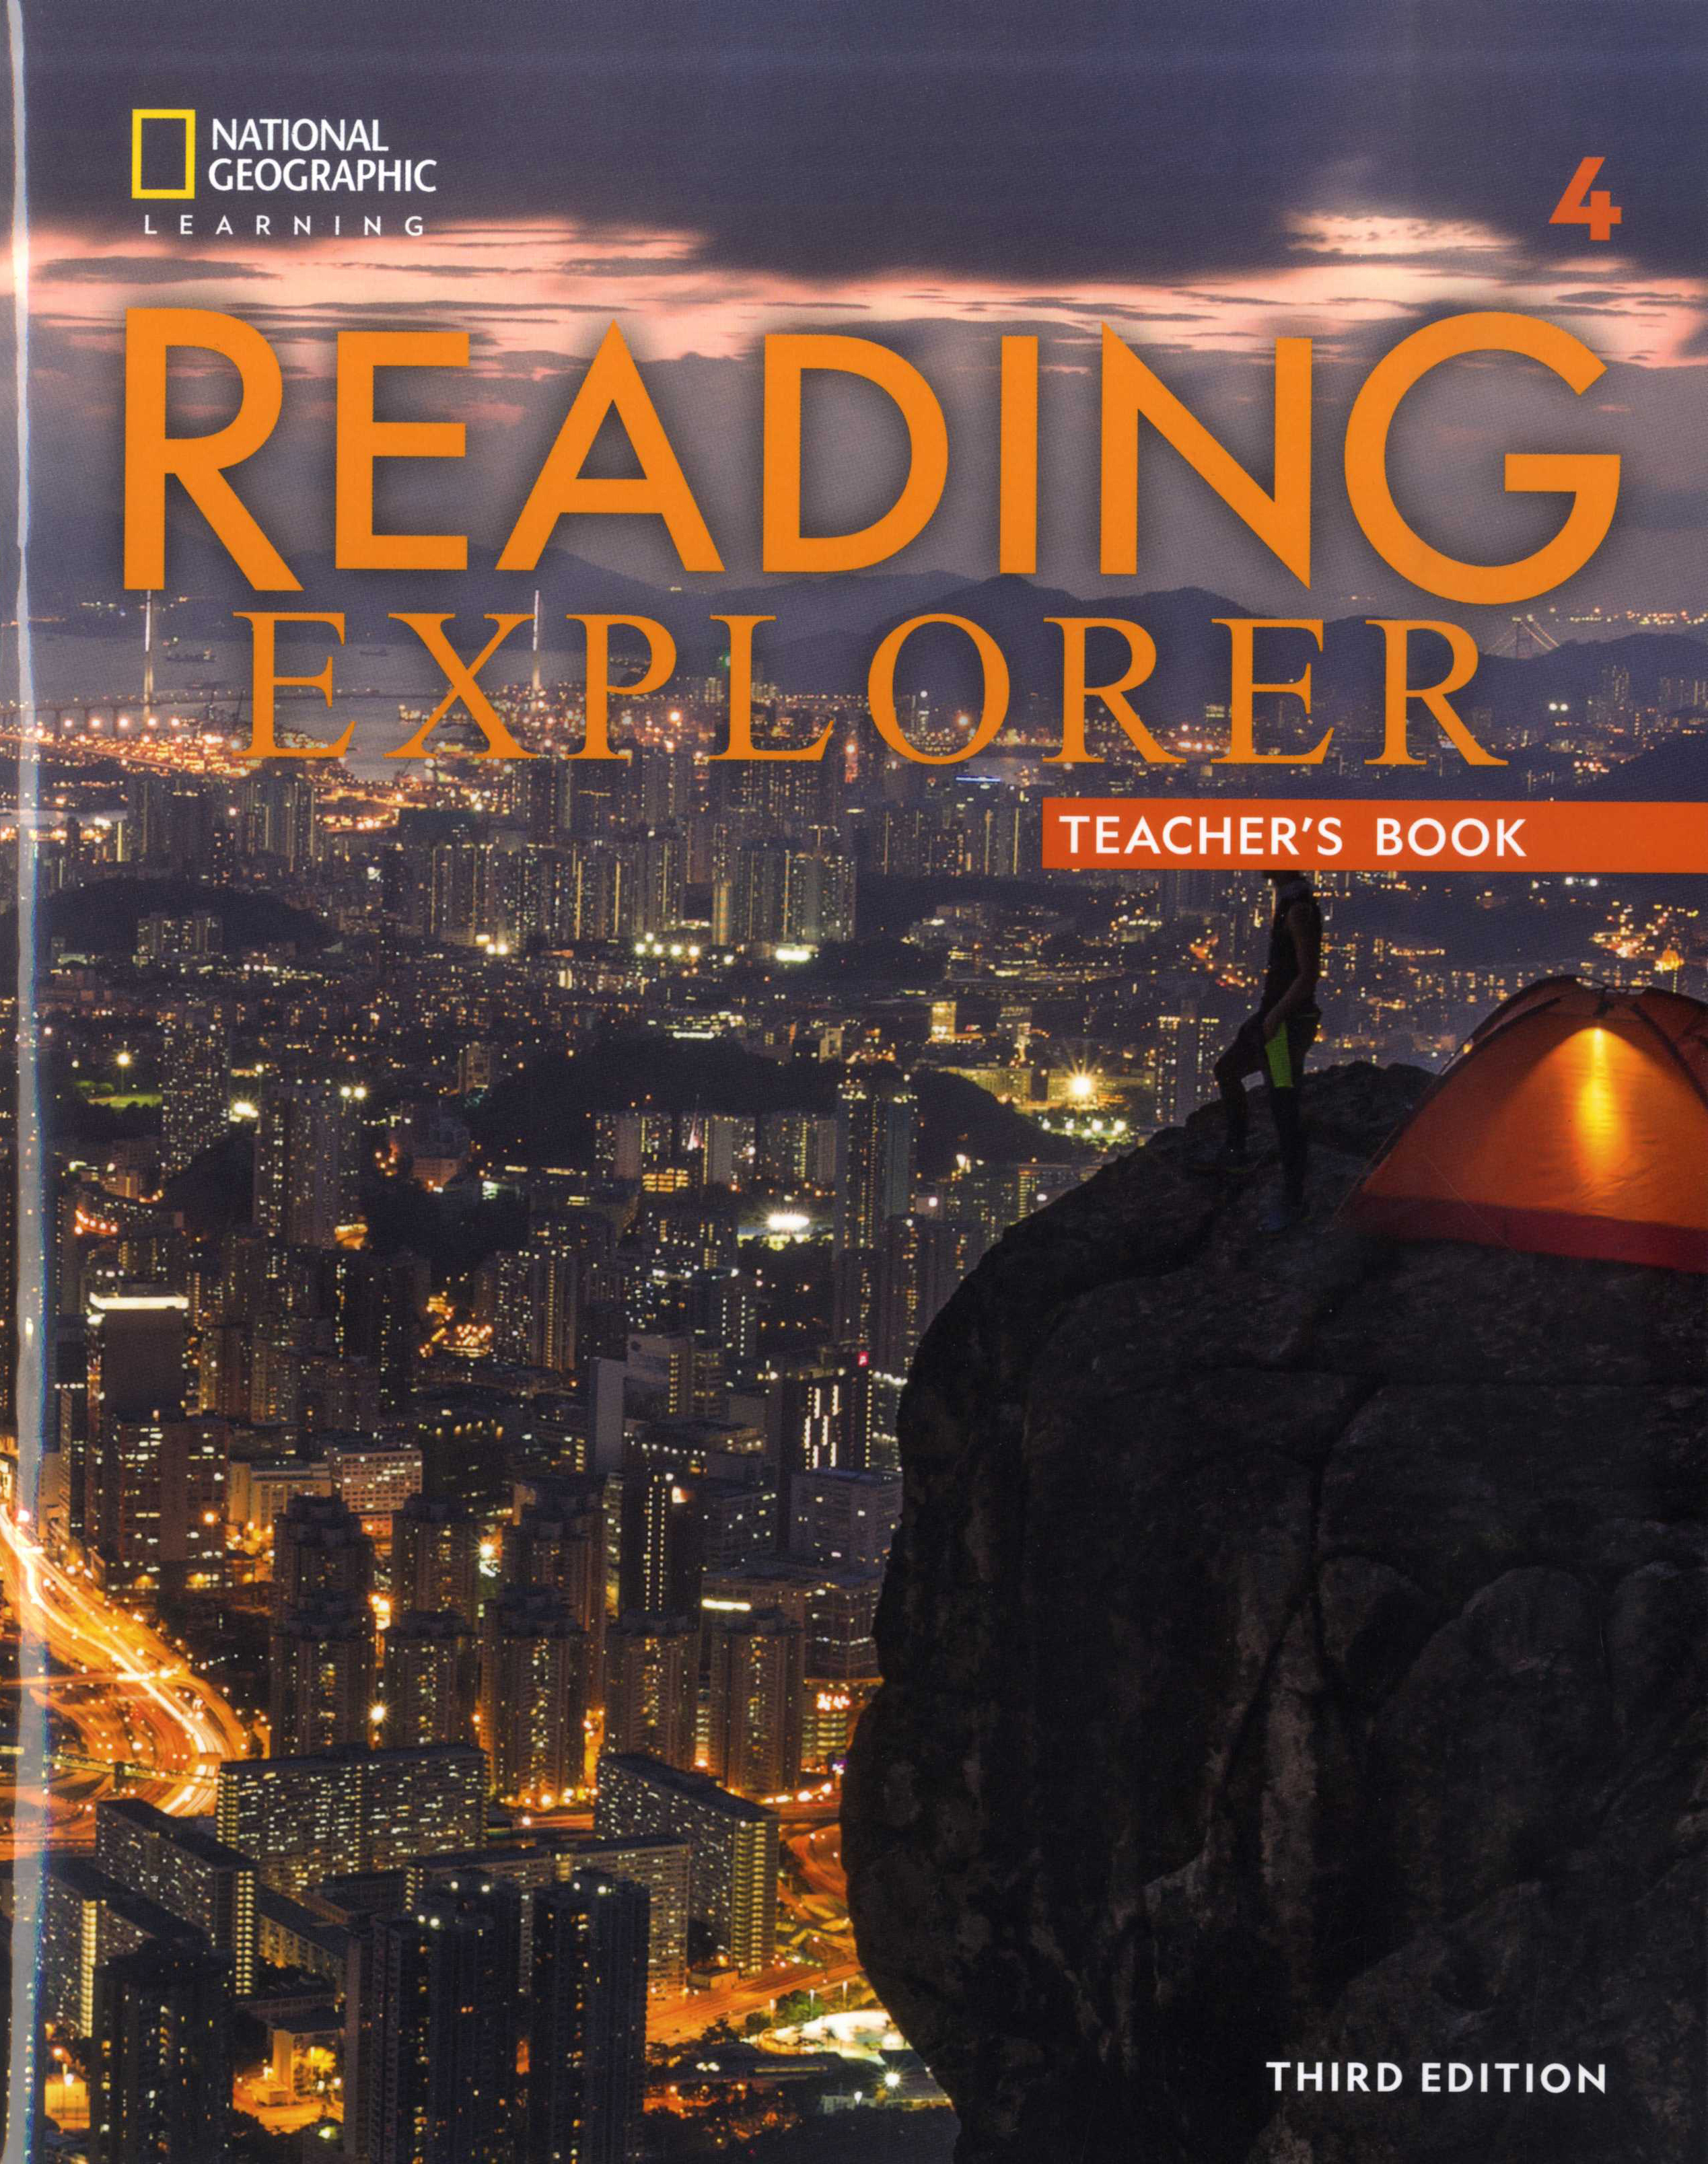 Reading explorer 3/E 4 SB Teacher's Book